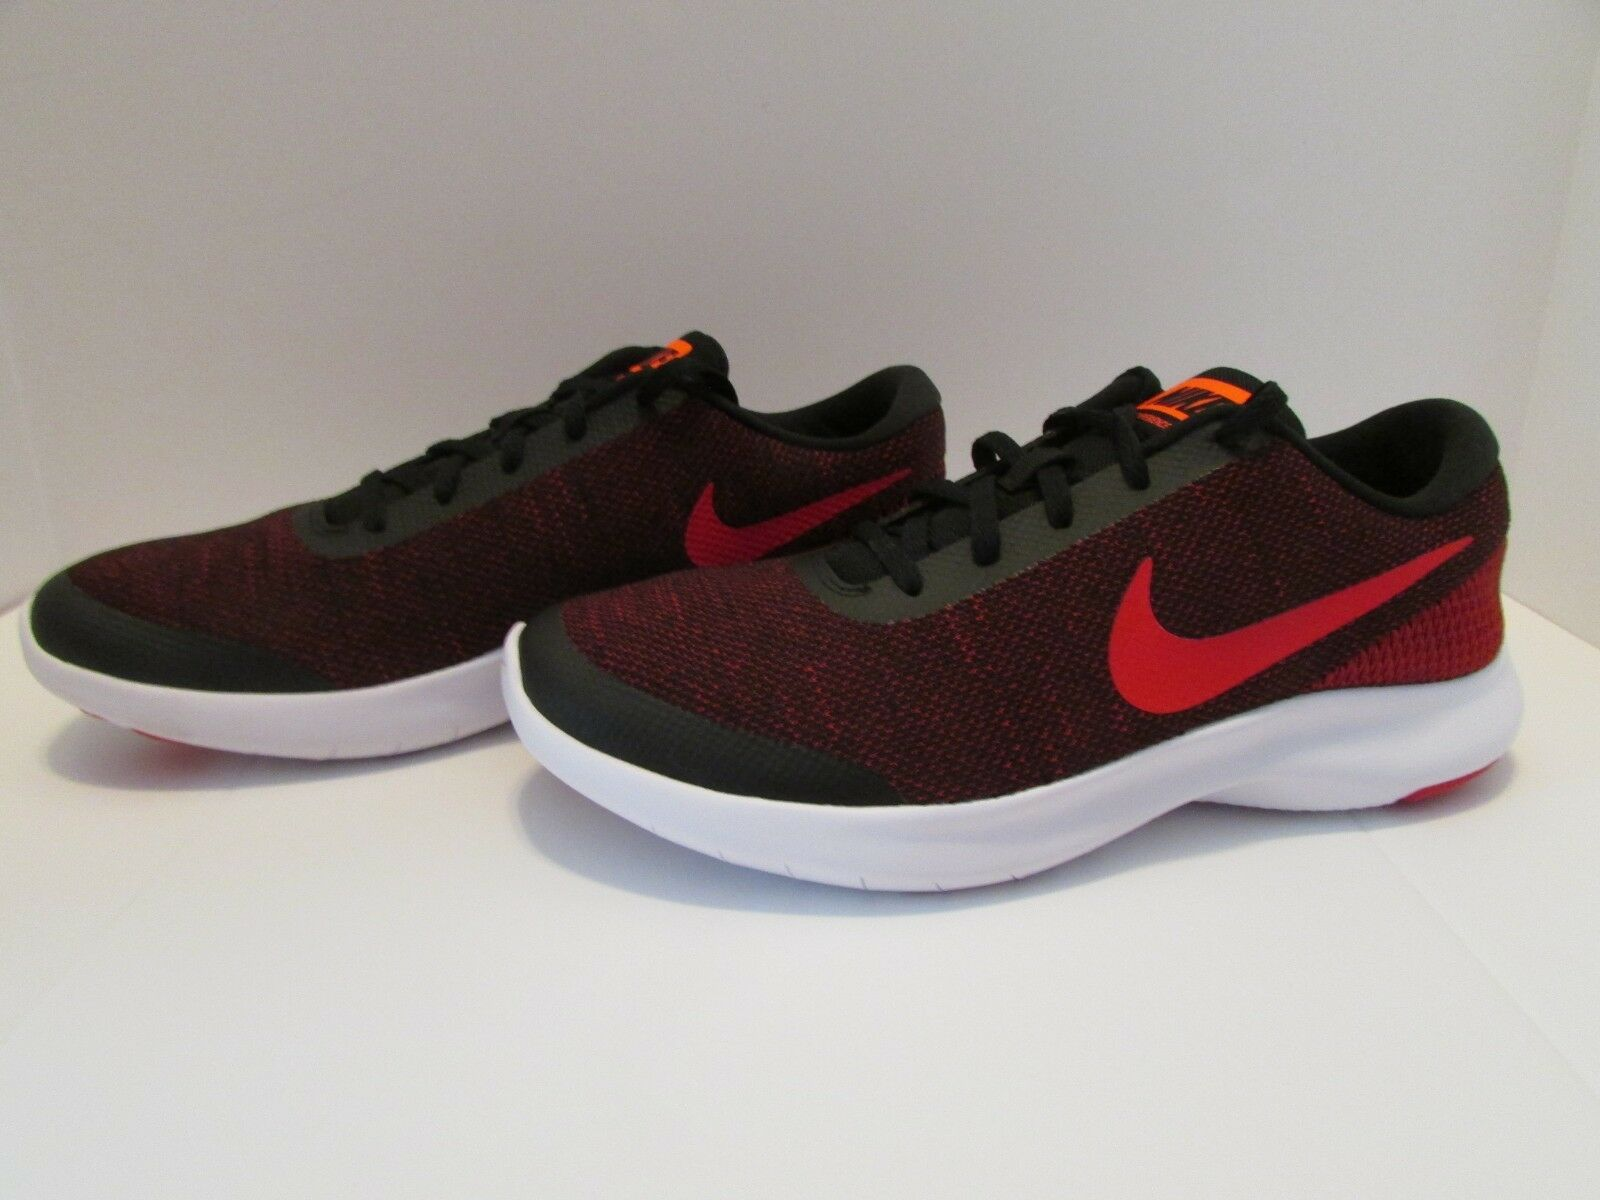 85a79948db7 Nike Experience Rn 7 Men's Size 9.5 Flex nnoiiy1937-Athletic Shoes ...